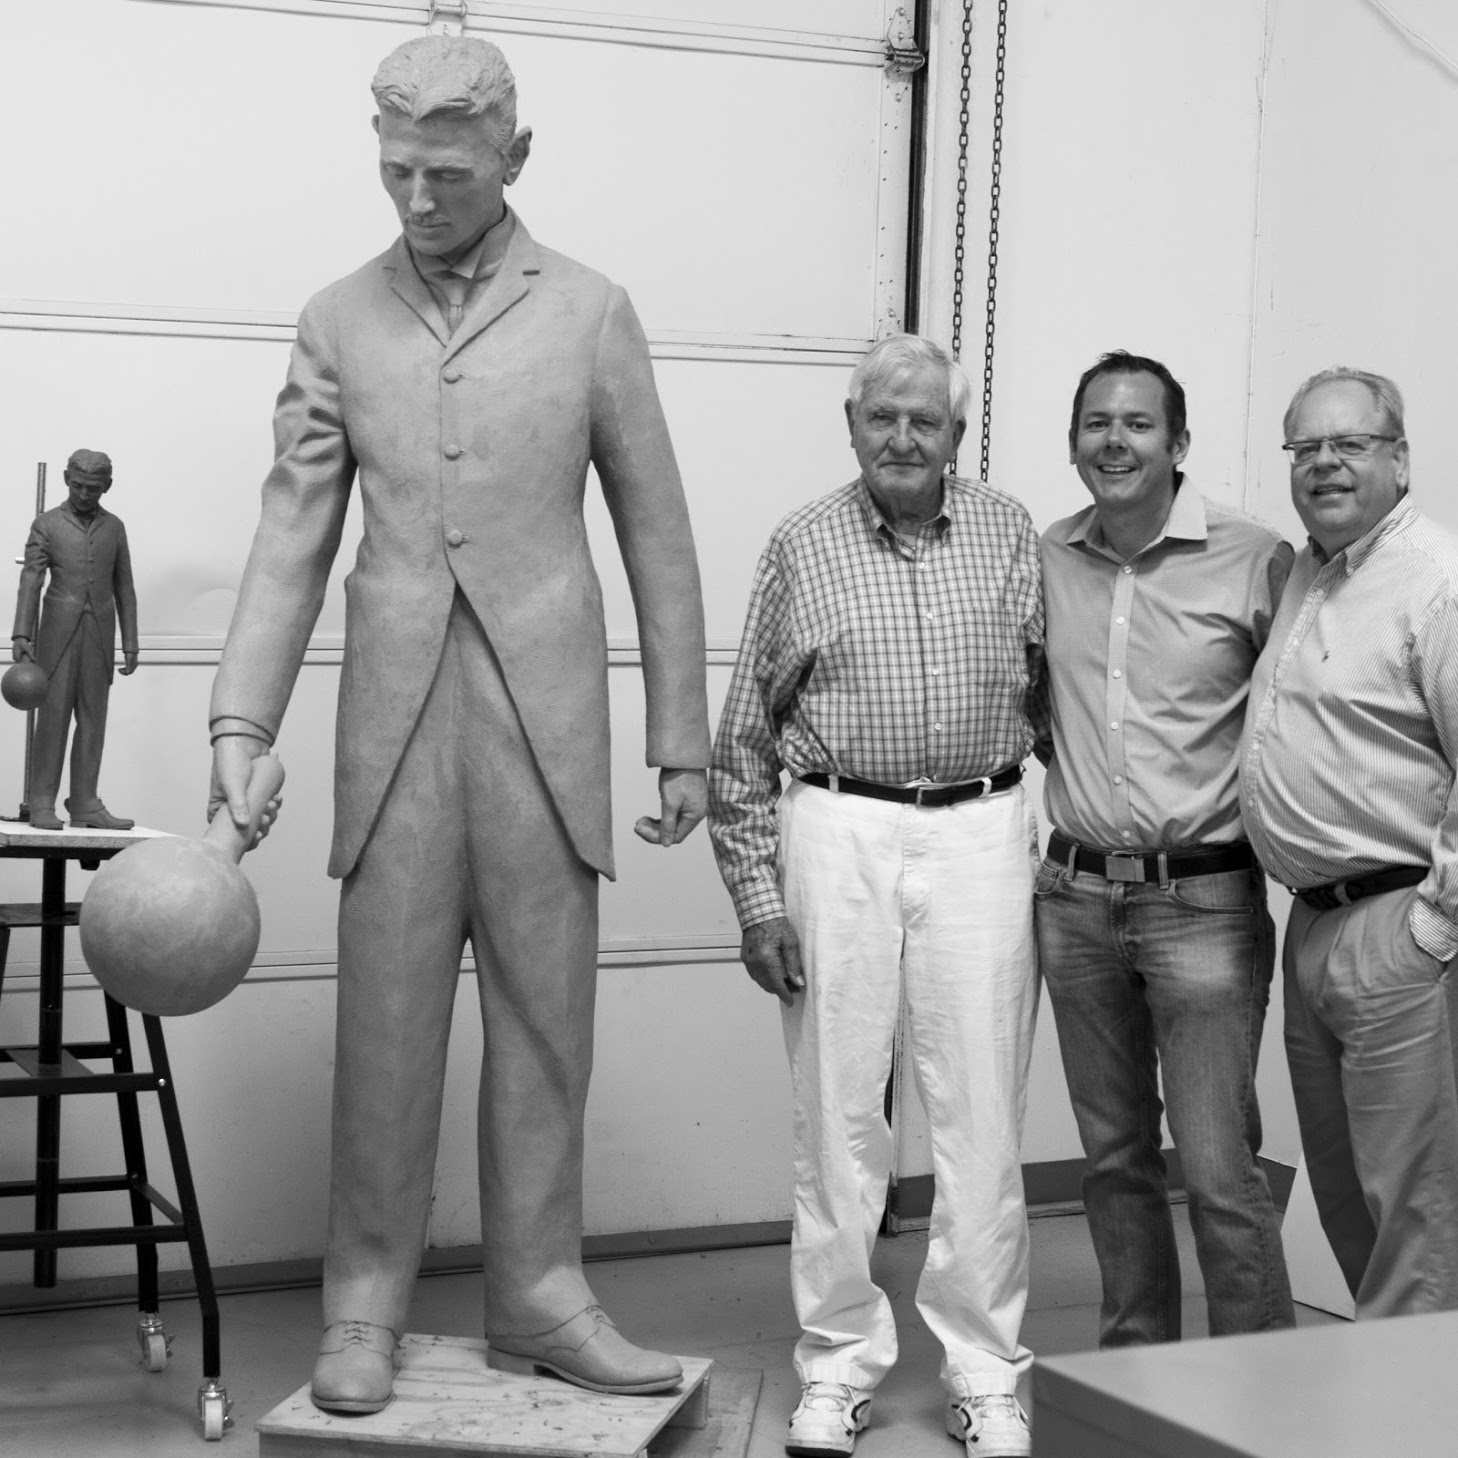 Landowner Harold Hohbach, organizer Dorrian Porter and Artist Terry Guyer prior to the casting.